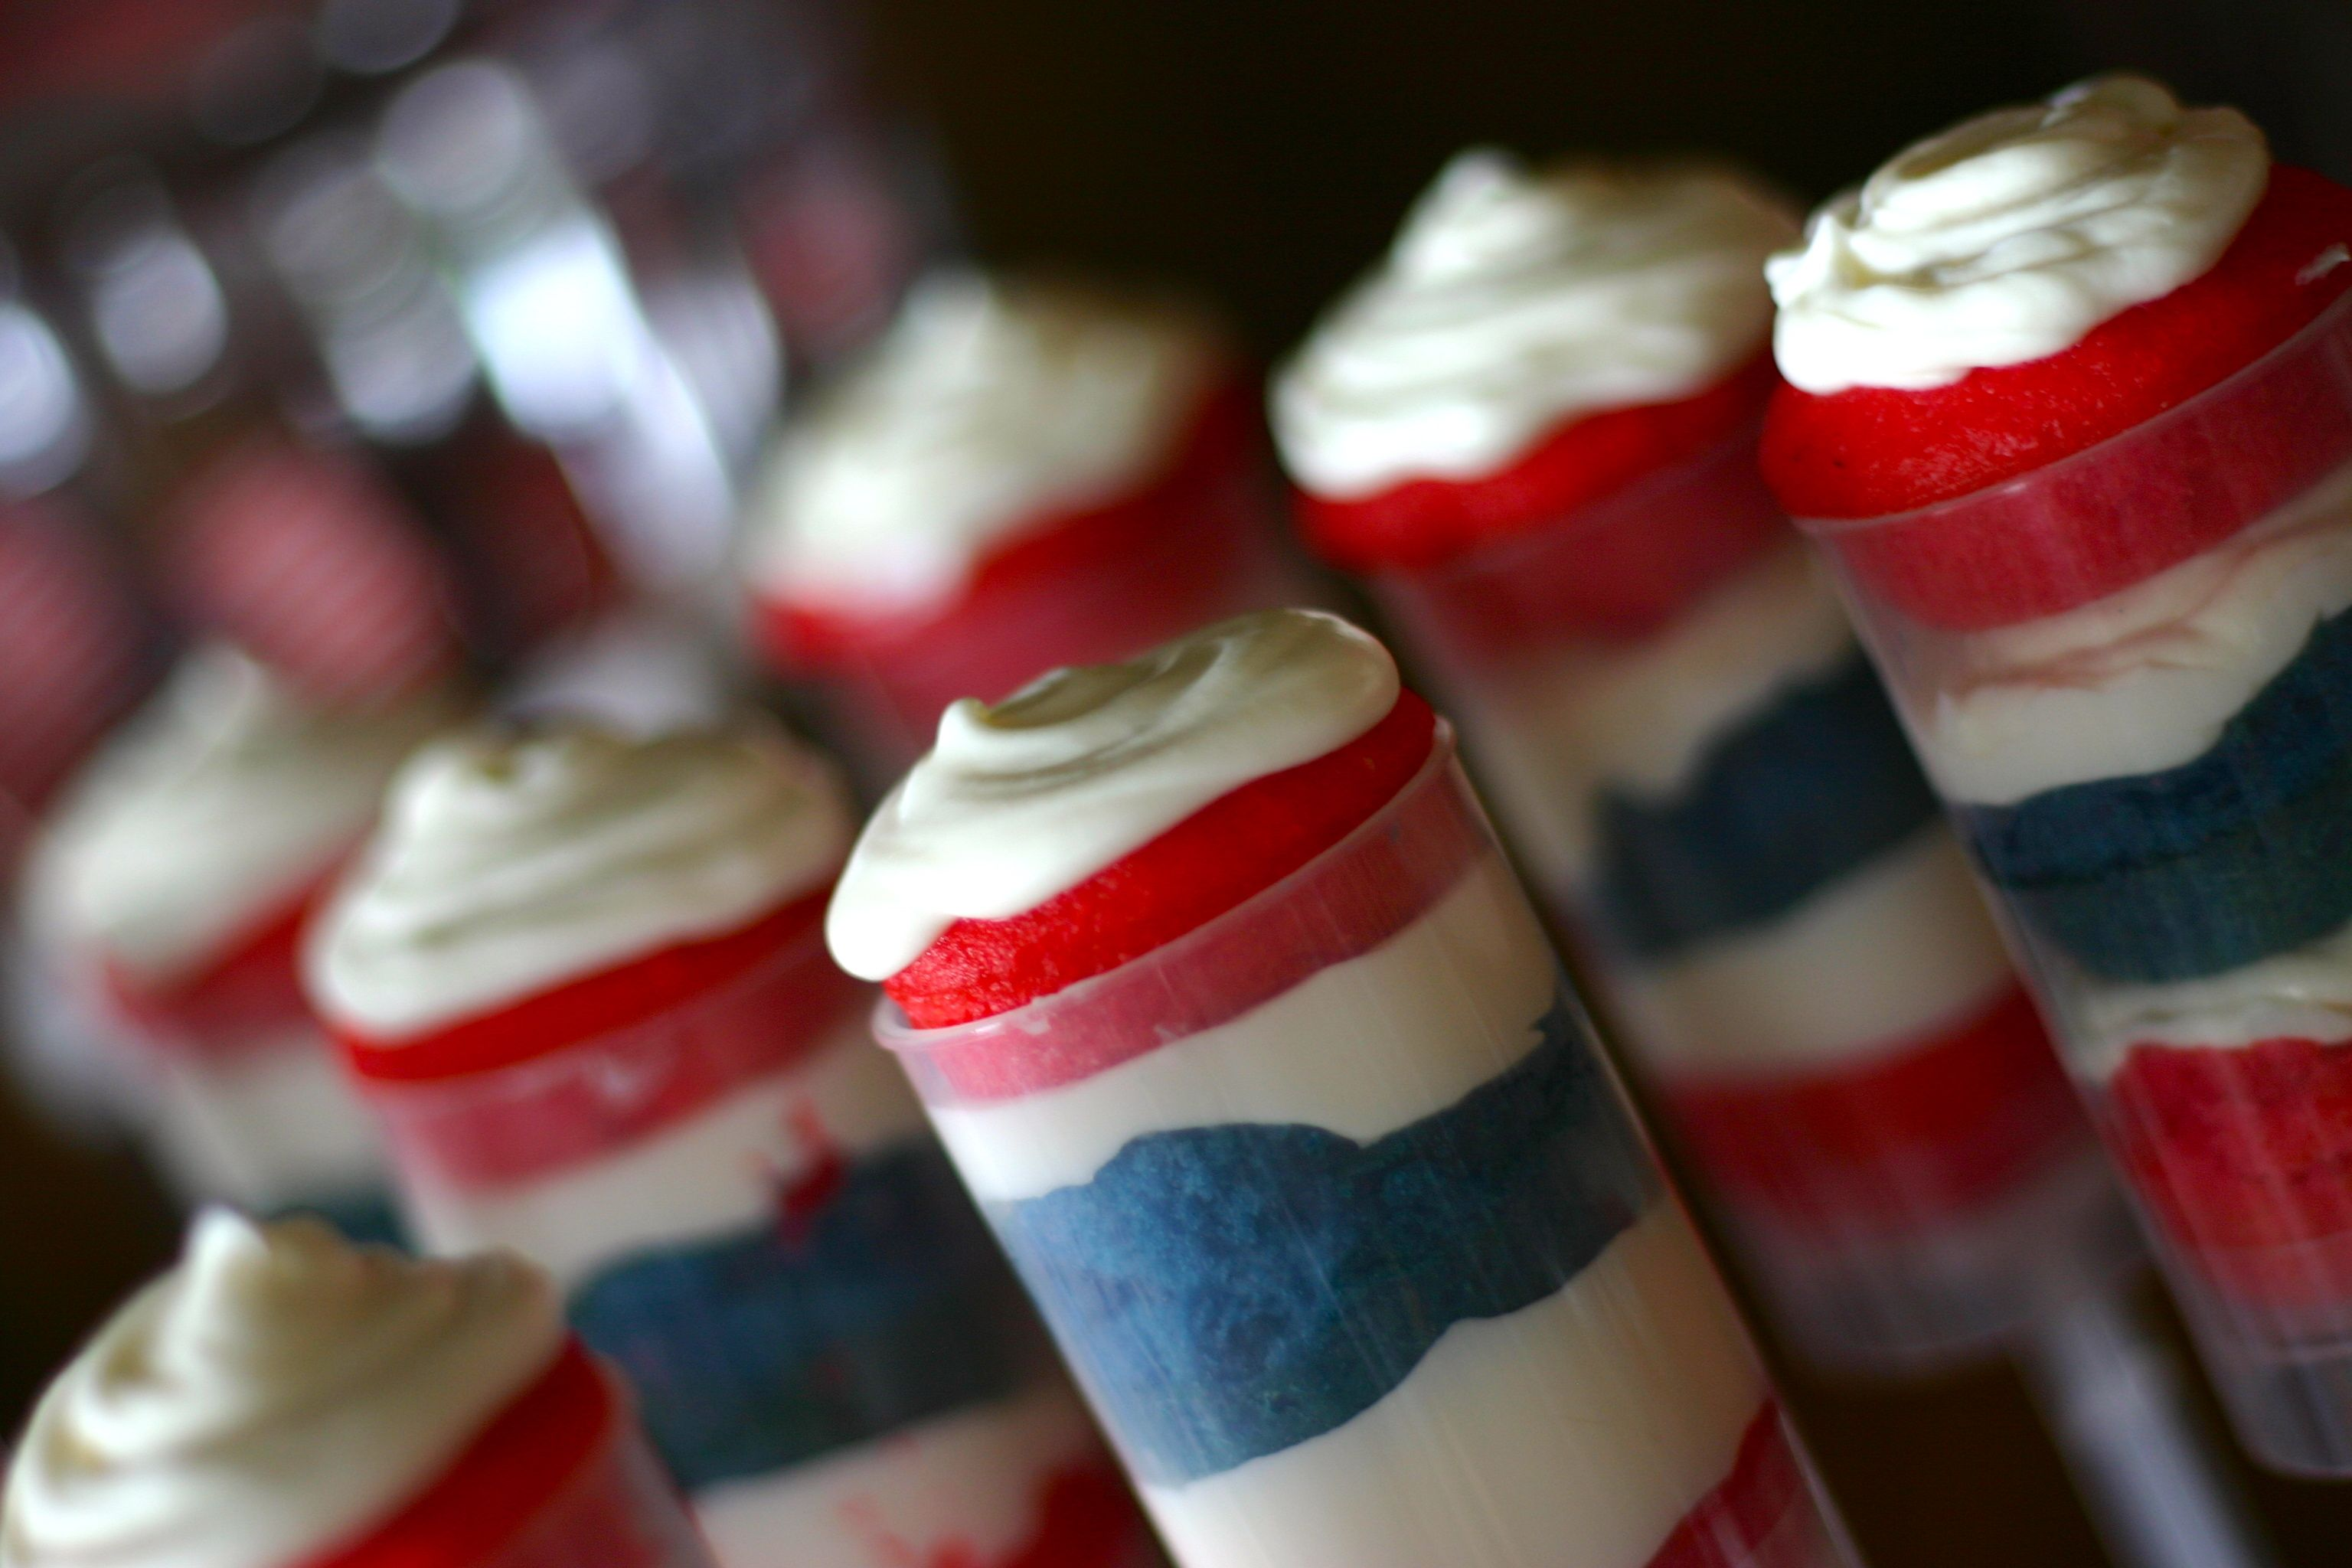 4th of July Candy Buffet Sweethearts  Co. Lapeer Michigan cake push pops